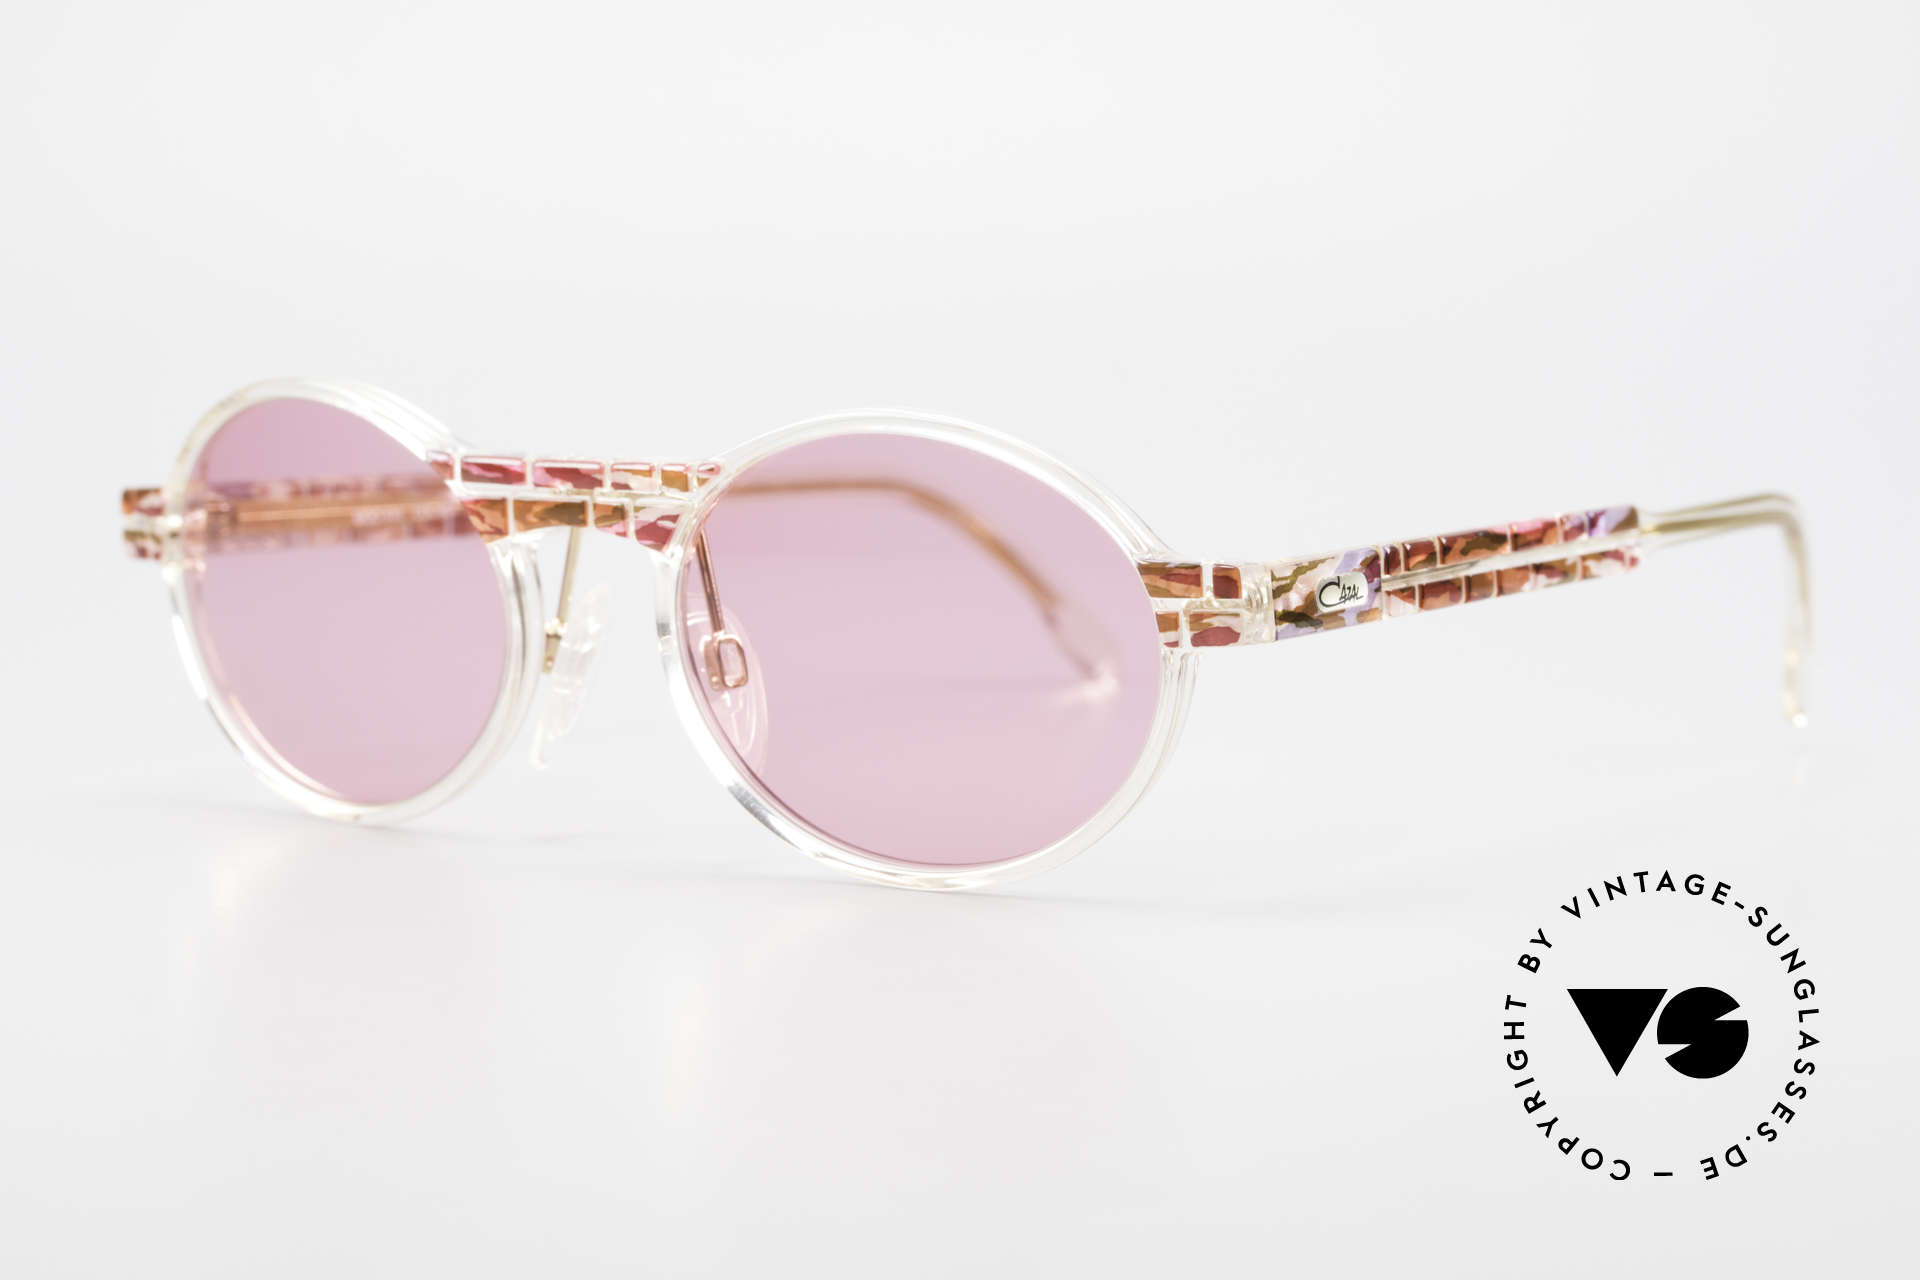 Cazal 510 Oval Pink Vintage Sunglasses, special edition with crystal clear frame - truly unique!, Made for Women